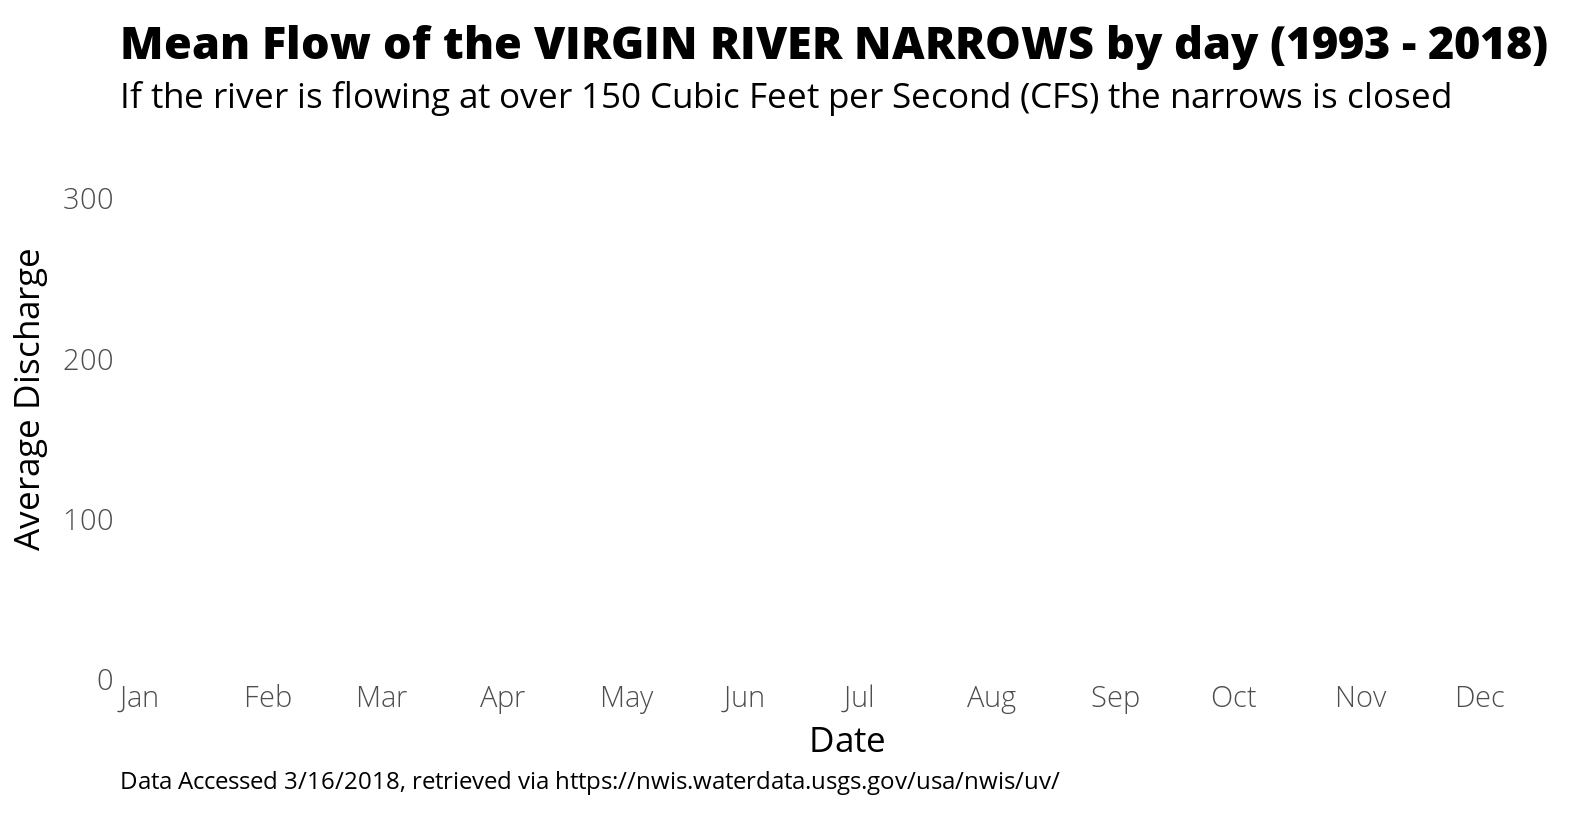 Mean Flow of the VIRGIN RIVER NARROWS by day (1993 - 2018)